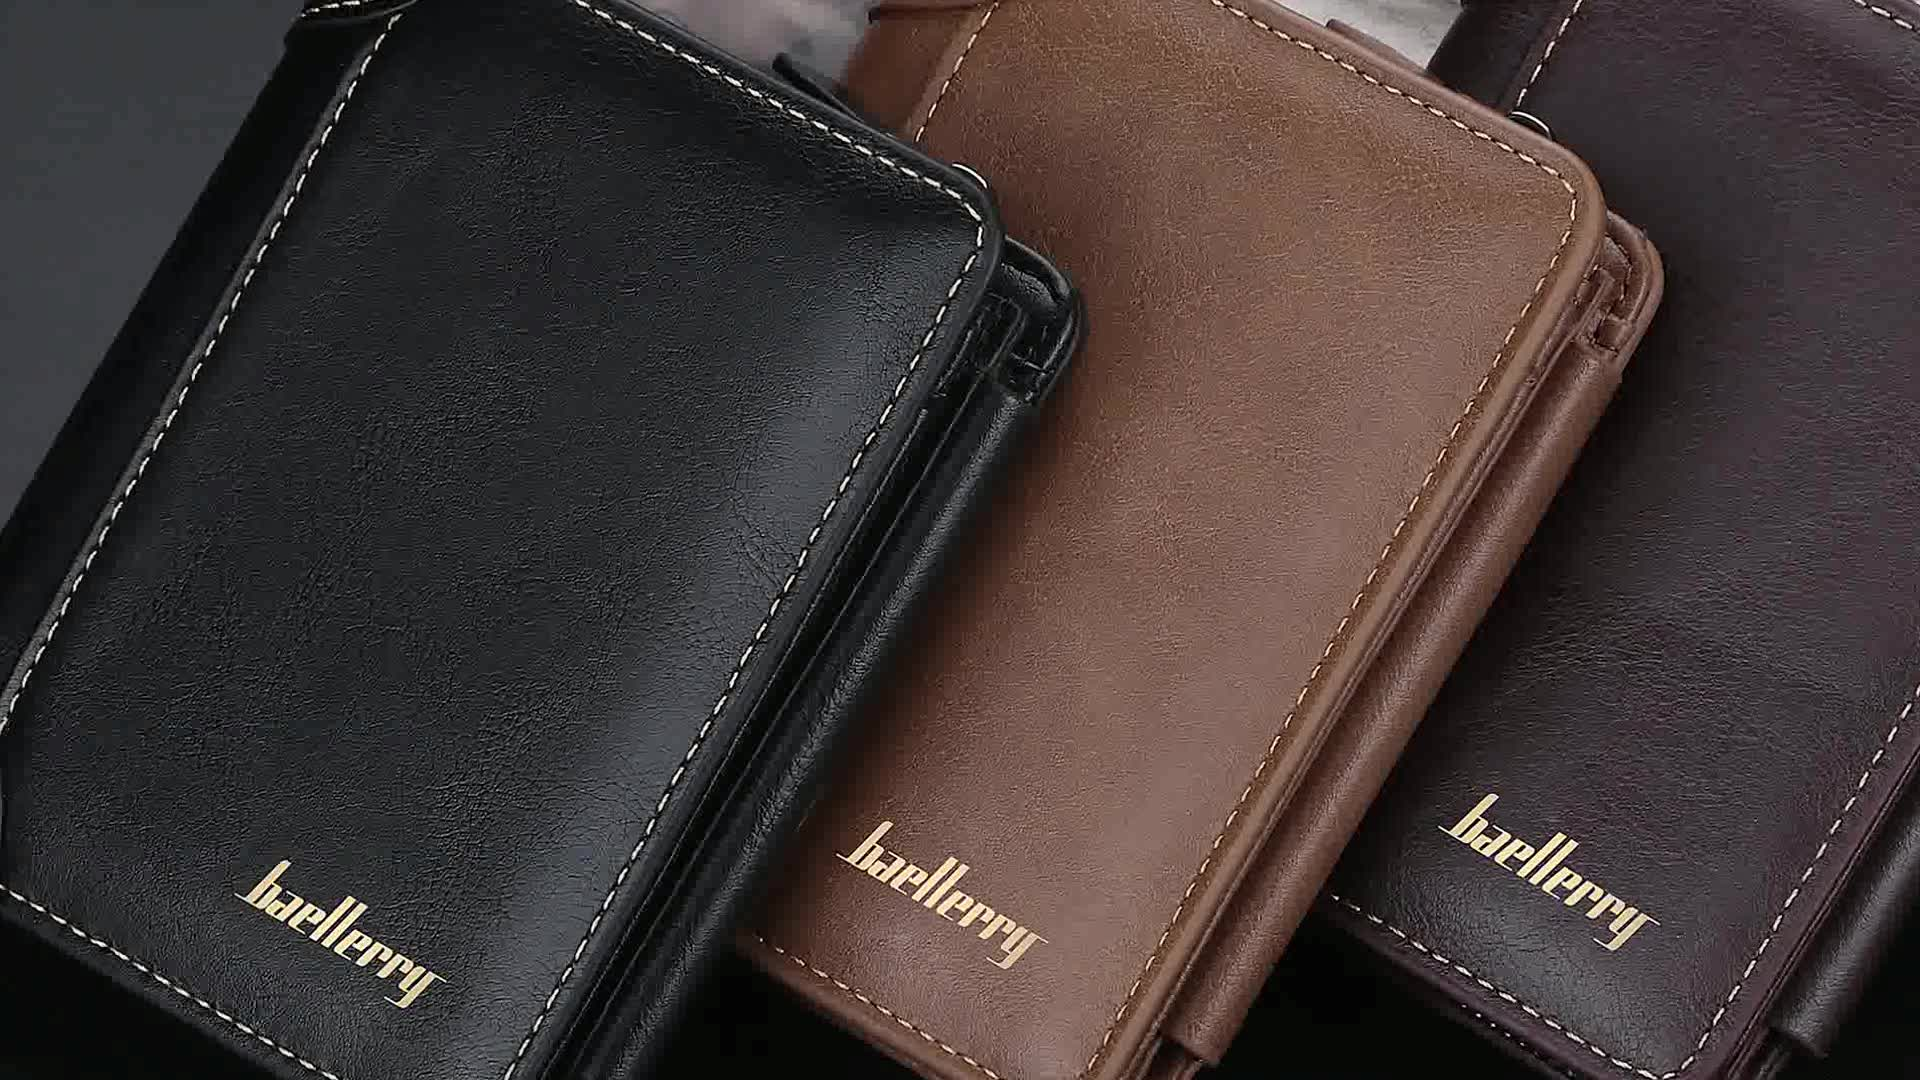 2019 New Style Baellerry Brand Large Capacity Multi-card positions Short Zipper Wallet For Men,Male Coin Purse Card Holder Case